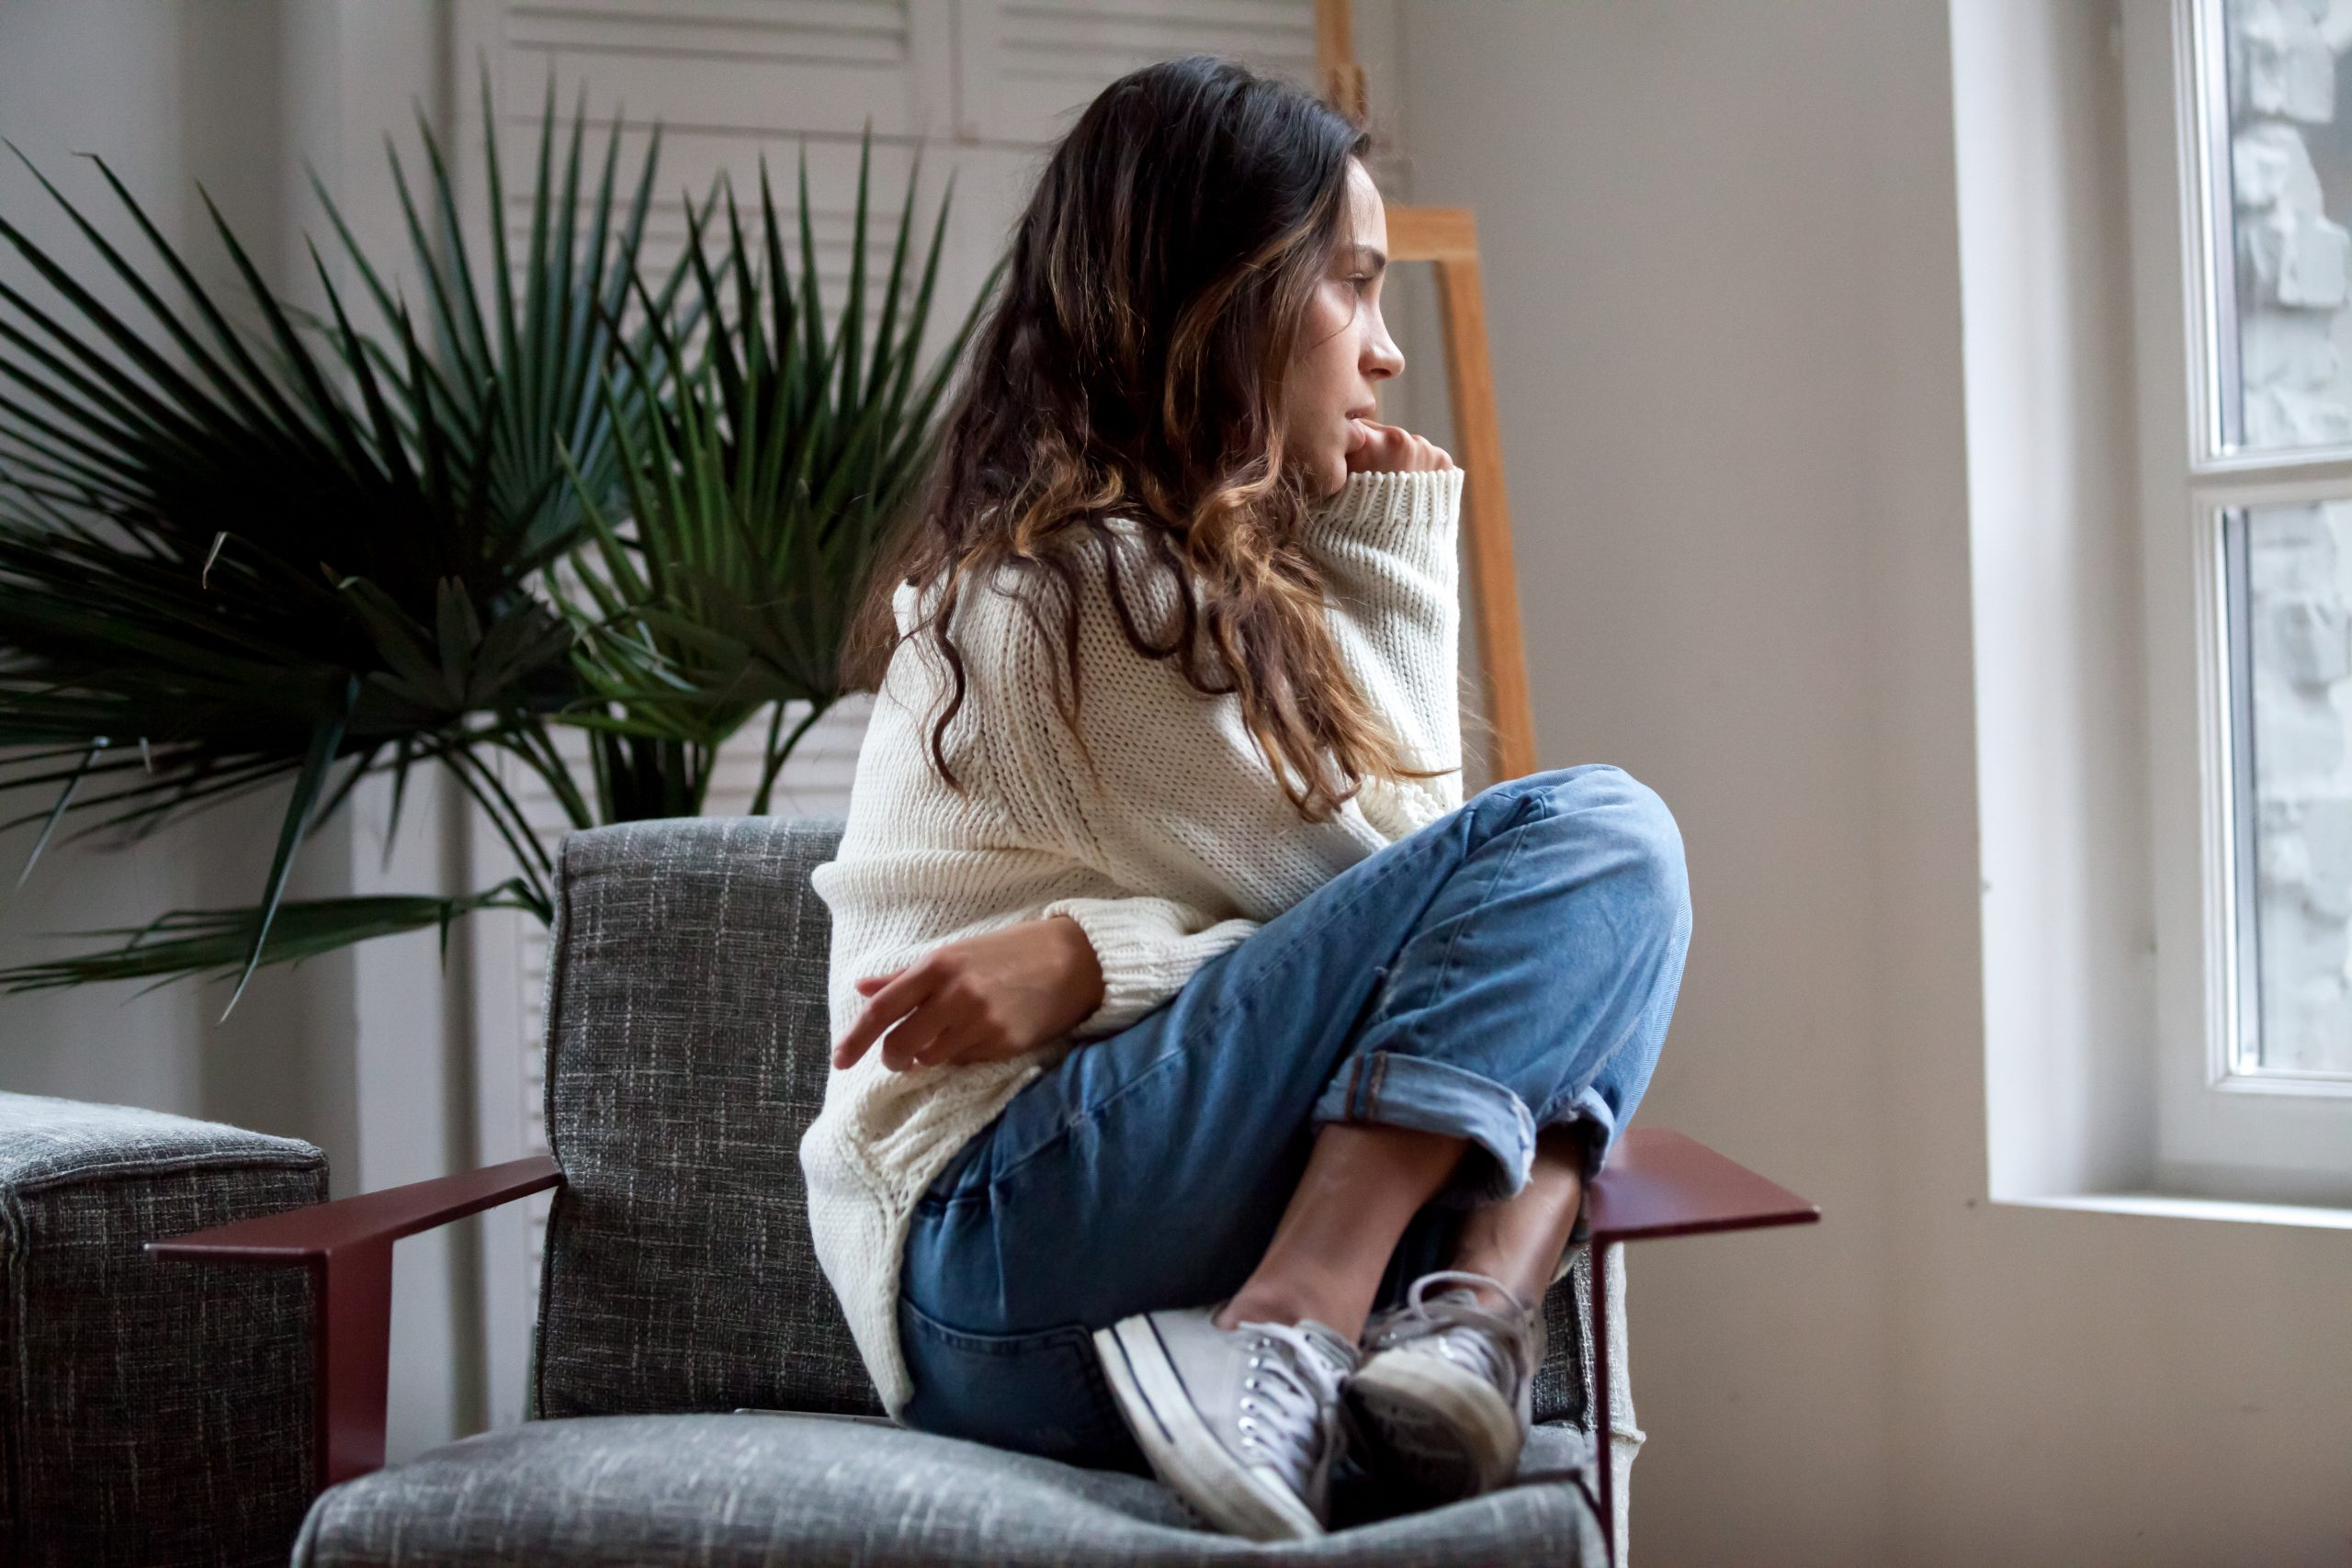 Sad thoughtful girl sitting on chair feeling anxiety depressed or lonely absolutely adell